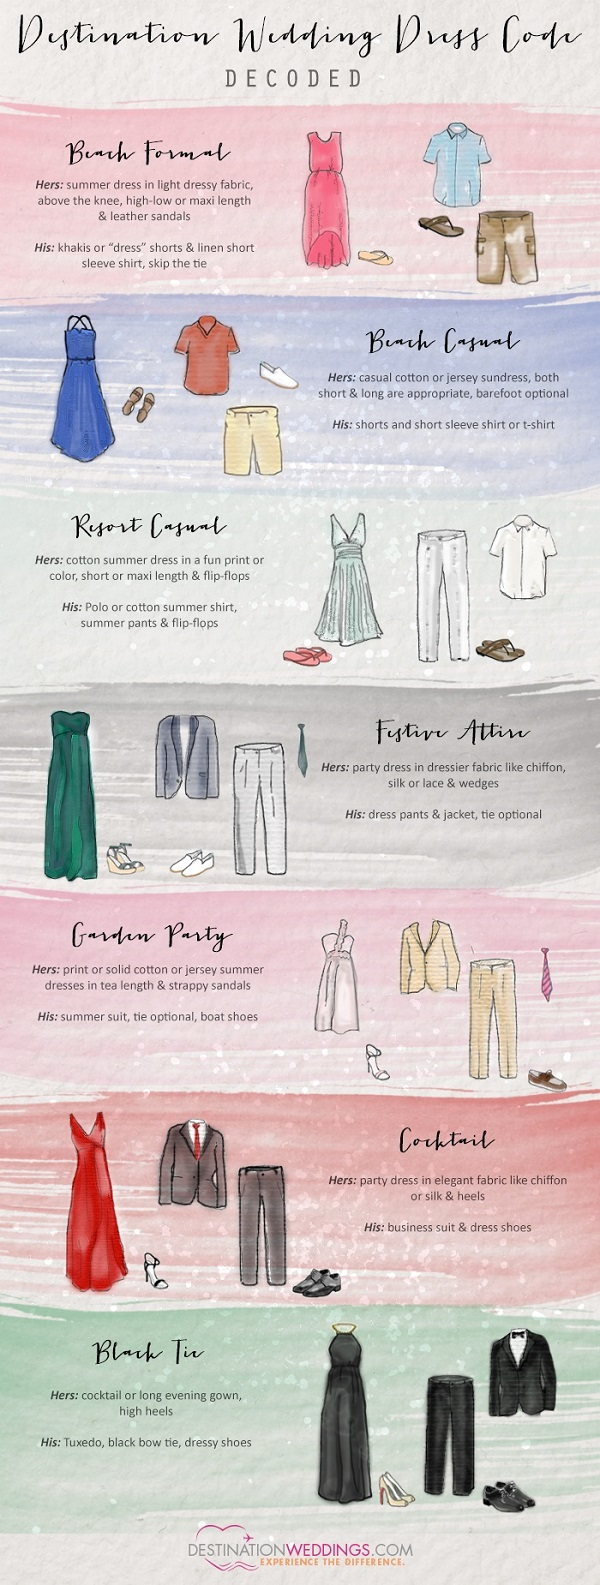 Wedding Invitation Dress Code